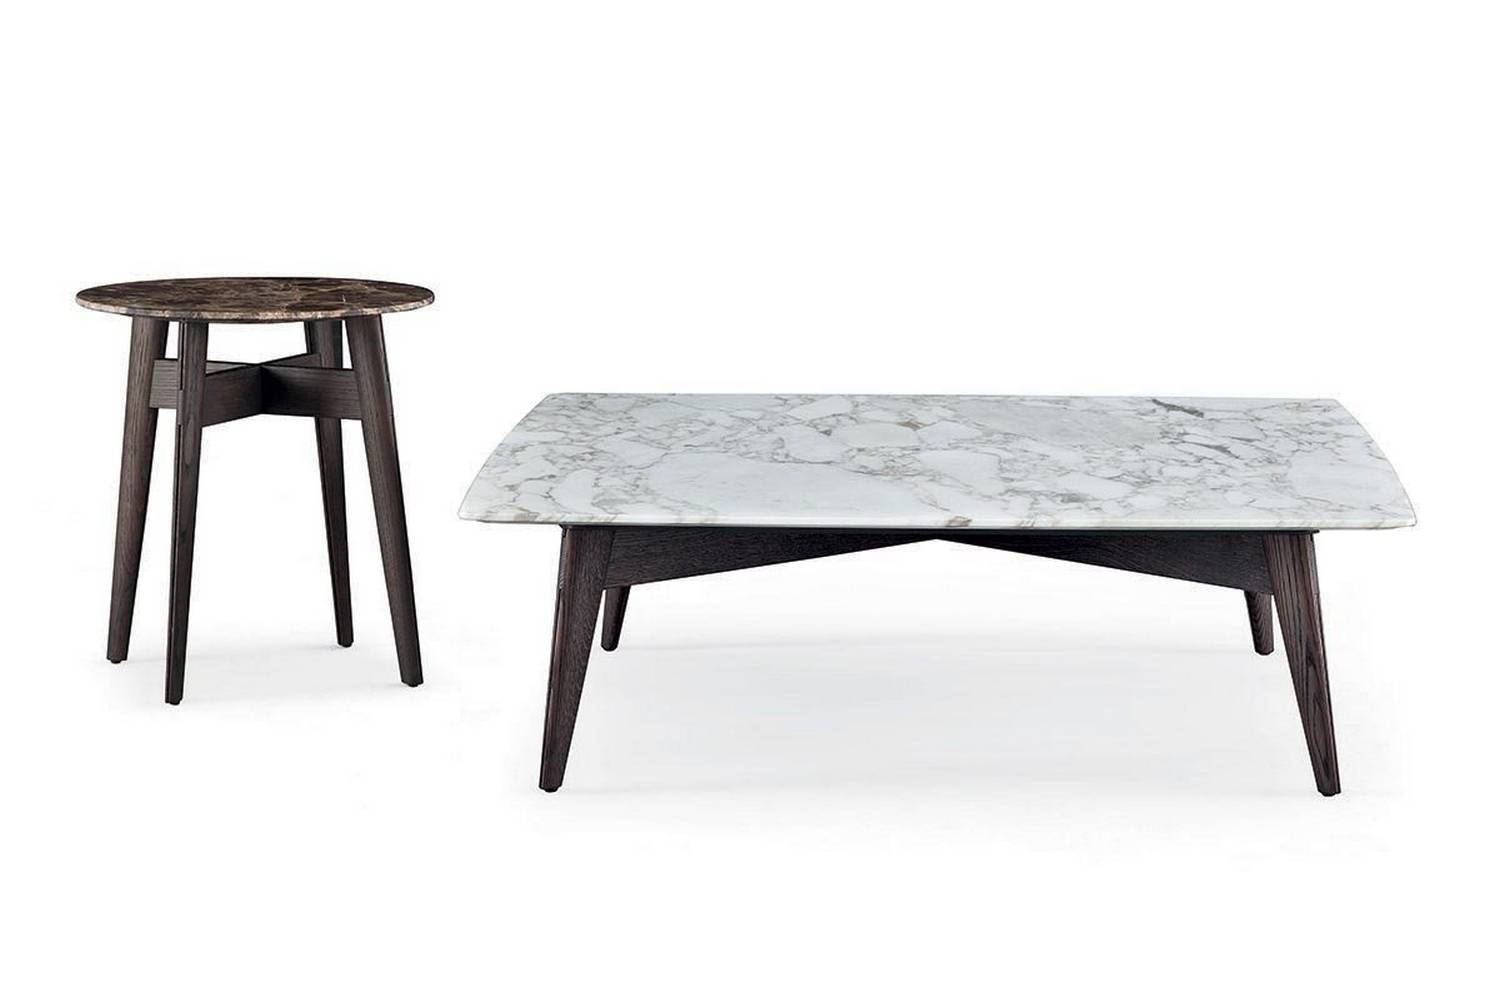 Bigger Coffee Table by Carlo Colombo for Poliform